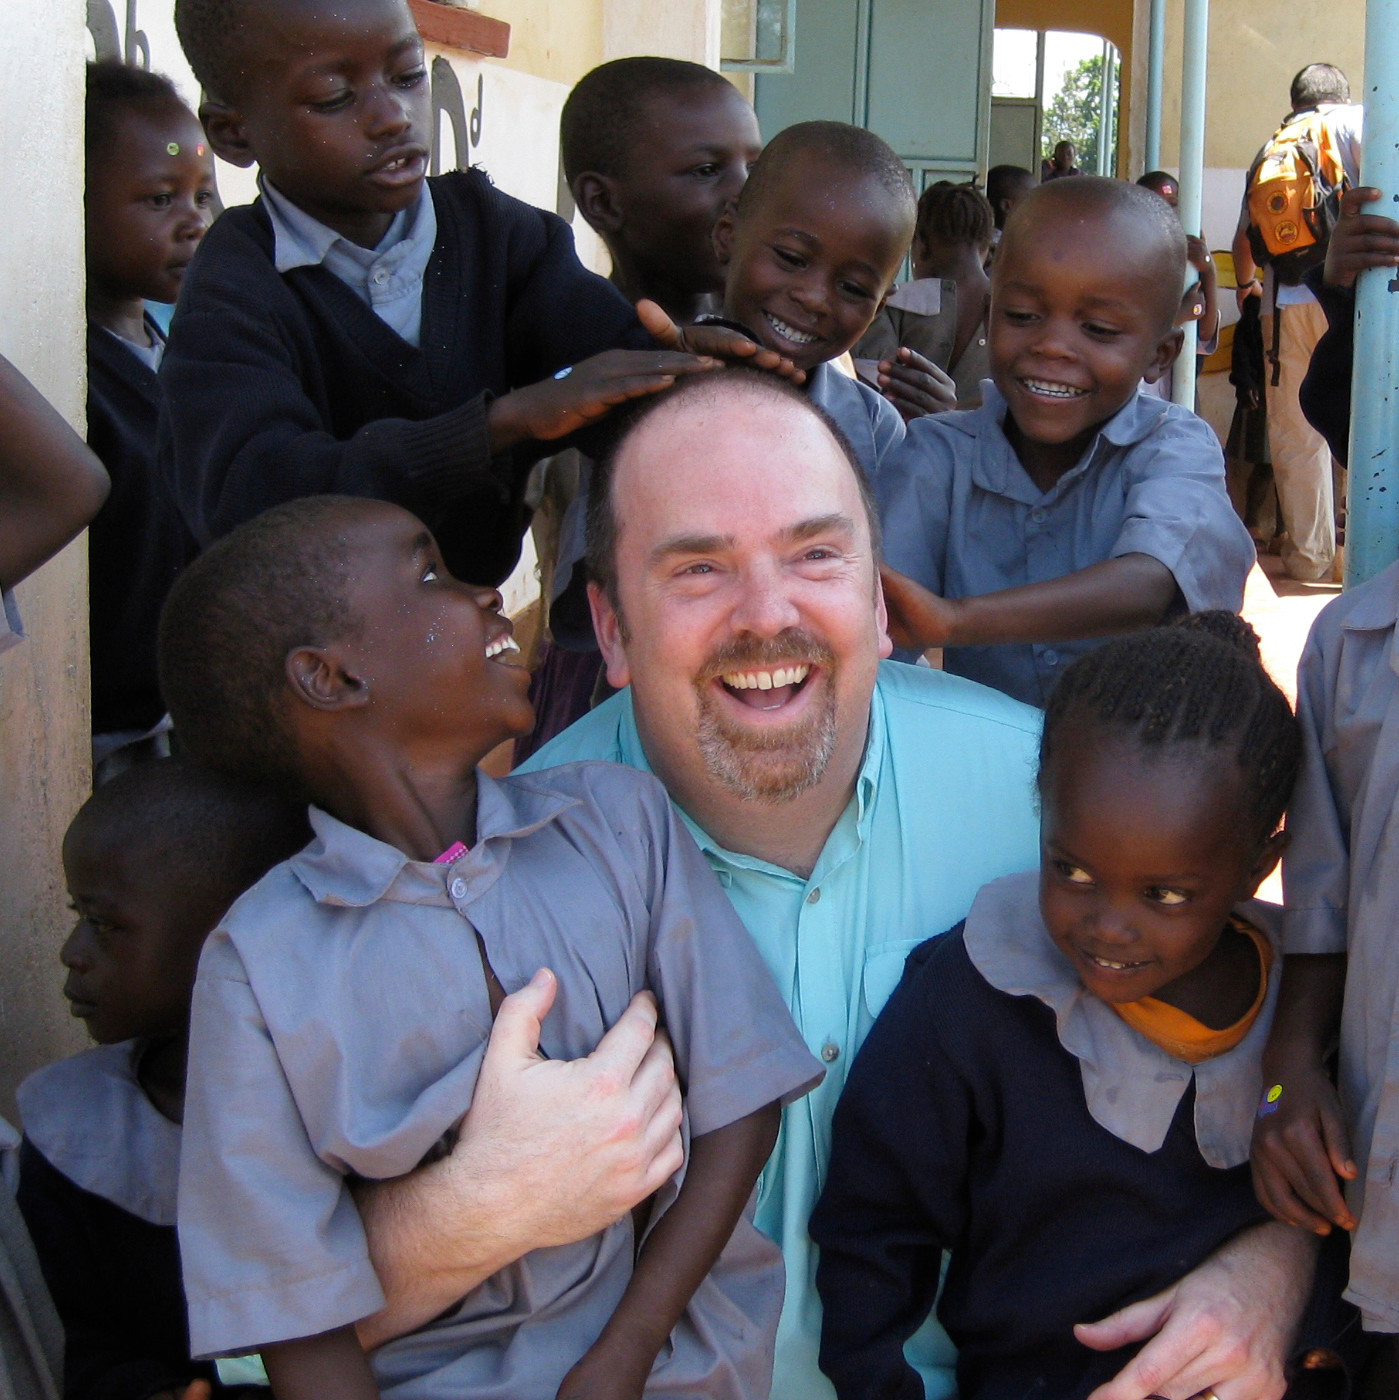 This photo, taken in Nairobi, Kenya, shows Greg Eubanks, CEO of an adoption agency in Washington state called WACAP, surrounded by students from a community elementary school. Eubanks says his agency, and other U.S. adoption agencies dealing in international adoption, face difficulties ahead because of higher fees and tougher regulations being imposed by the U.S. State Department.